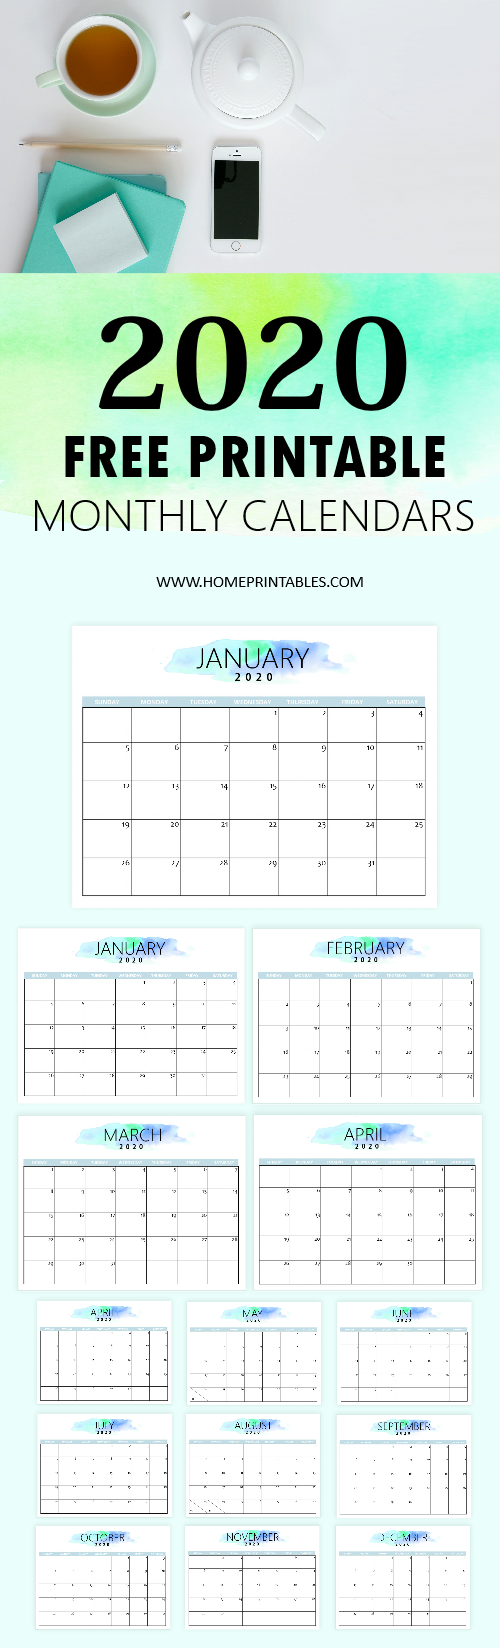 Download this f2020 calendar printable for free! Great to use in your home and office. With it, you cam easily organize your to-do's, meal plans and so much more! #calendar #2020 #free